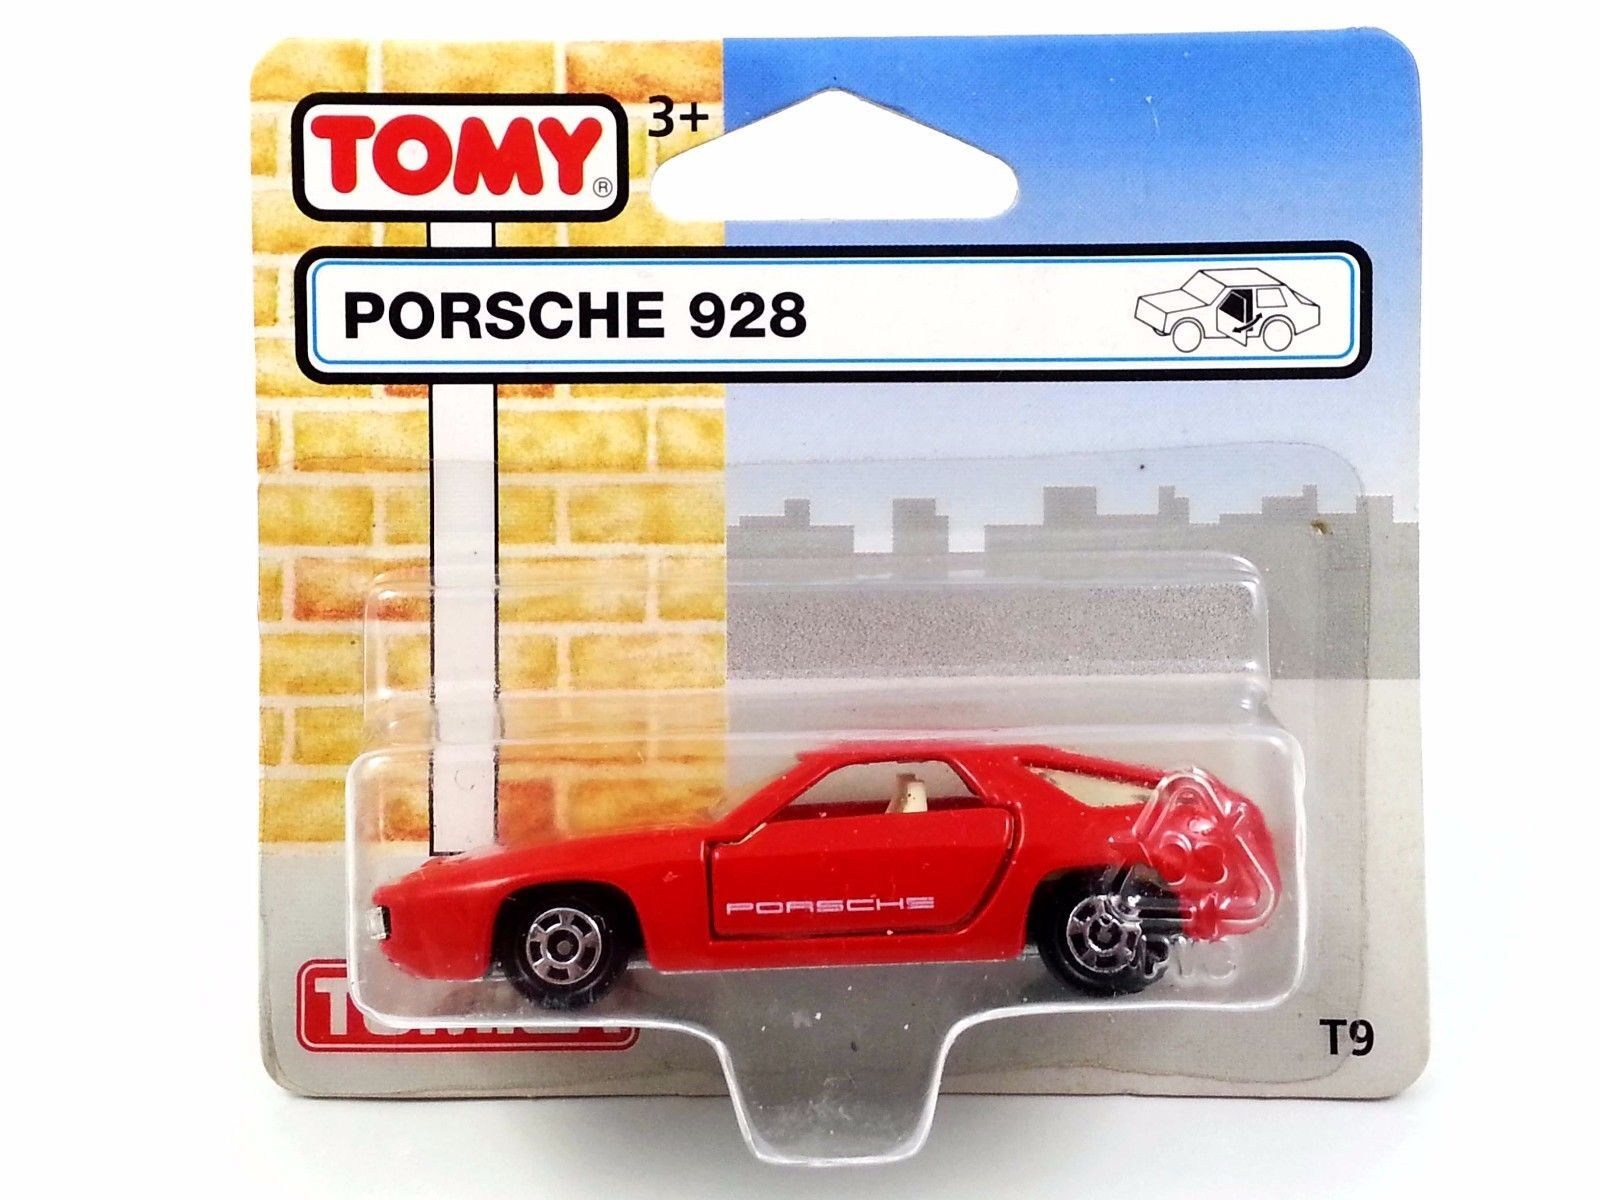 Click image for larger version  Name:	T09 - Porsche 928.jpg Views:	2 Size:	206.8 KB ID:	3803